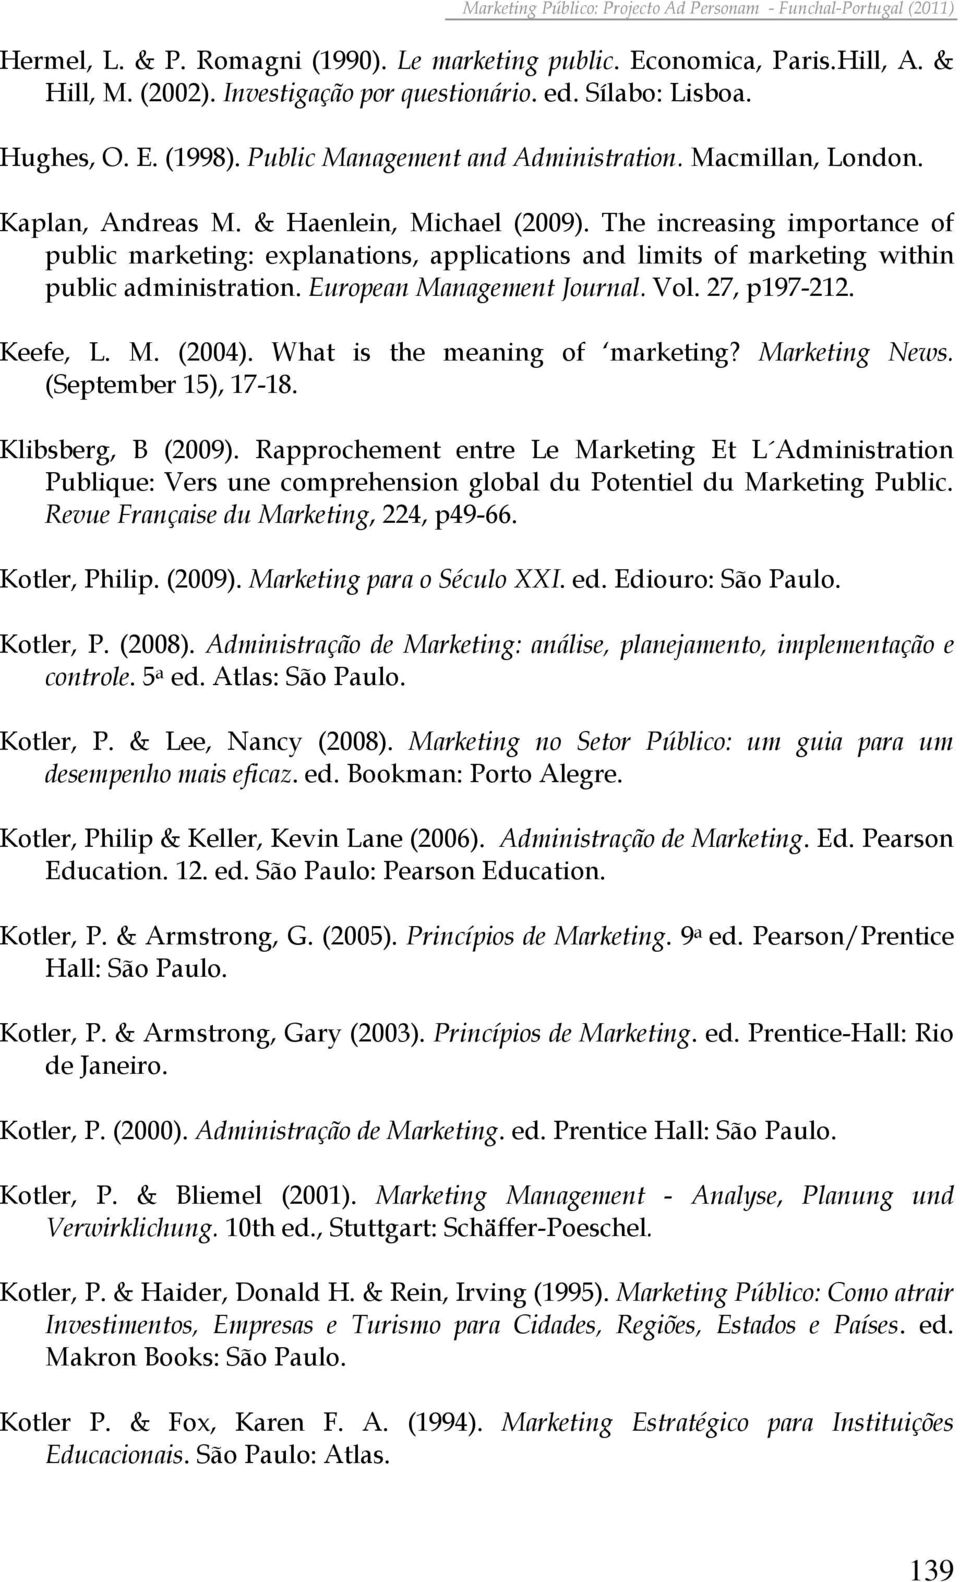 The increasing importance of public marketing: explanations, applications and limits of marketing within public administration. European Management Journal. Vol. 27, p197-212. Keefe, L. M. (2004).